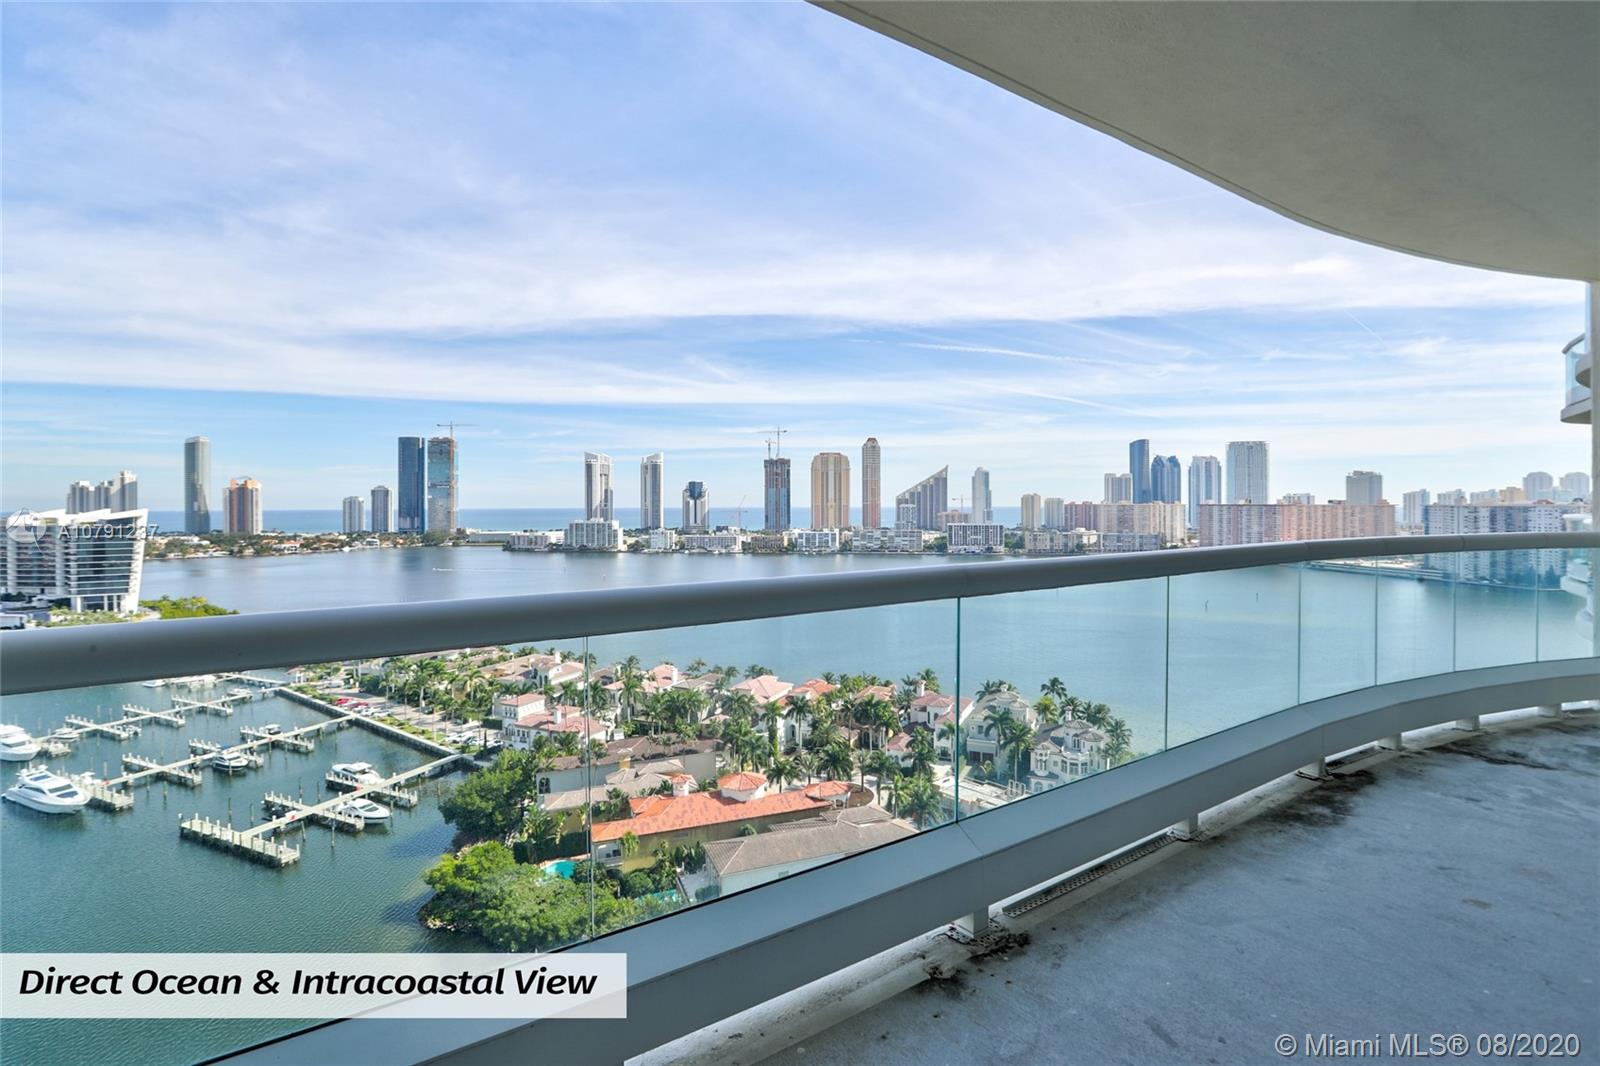 *Raw Unit** Ready for your Custom Build Out. Priced below appraisal! Unit 2502 Renovated sold for $1,590,000. Plenty of equity. Owner spent $150k on redesigning the floorplan to optimize space, have clean lines & views.  Plans & Renderings available.  Flow-Thru Unit has Direct Bay & Ocean Views from Master Suite, Great Room, Kitchen Gas Ready, City and Island View from 2nd and 3rd beds, 2 private terraces,  Private Elevator.  Bldg has Best Amenities on Island: Theater & fitness room, pool, valet, concierge, 24 hr security, wine cellar, breakfast/coffee/juice bar, biz center.  Williams Island has renovated Restaurants, market, resort living, Indoor Pool, 16 court Tennis center & Marina, 27k sq ft spa & fitness center.  Bring Your Contractor & Designer, Owner's Contractor Available.